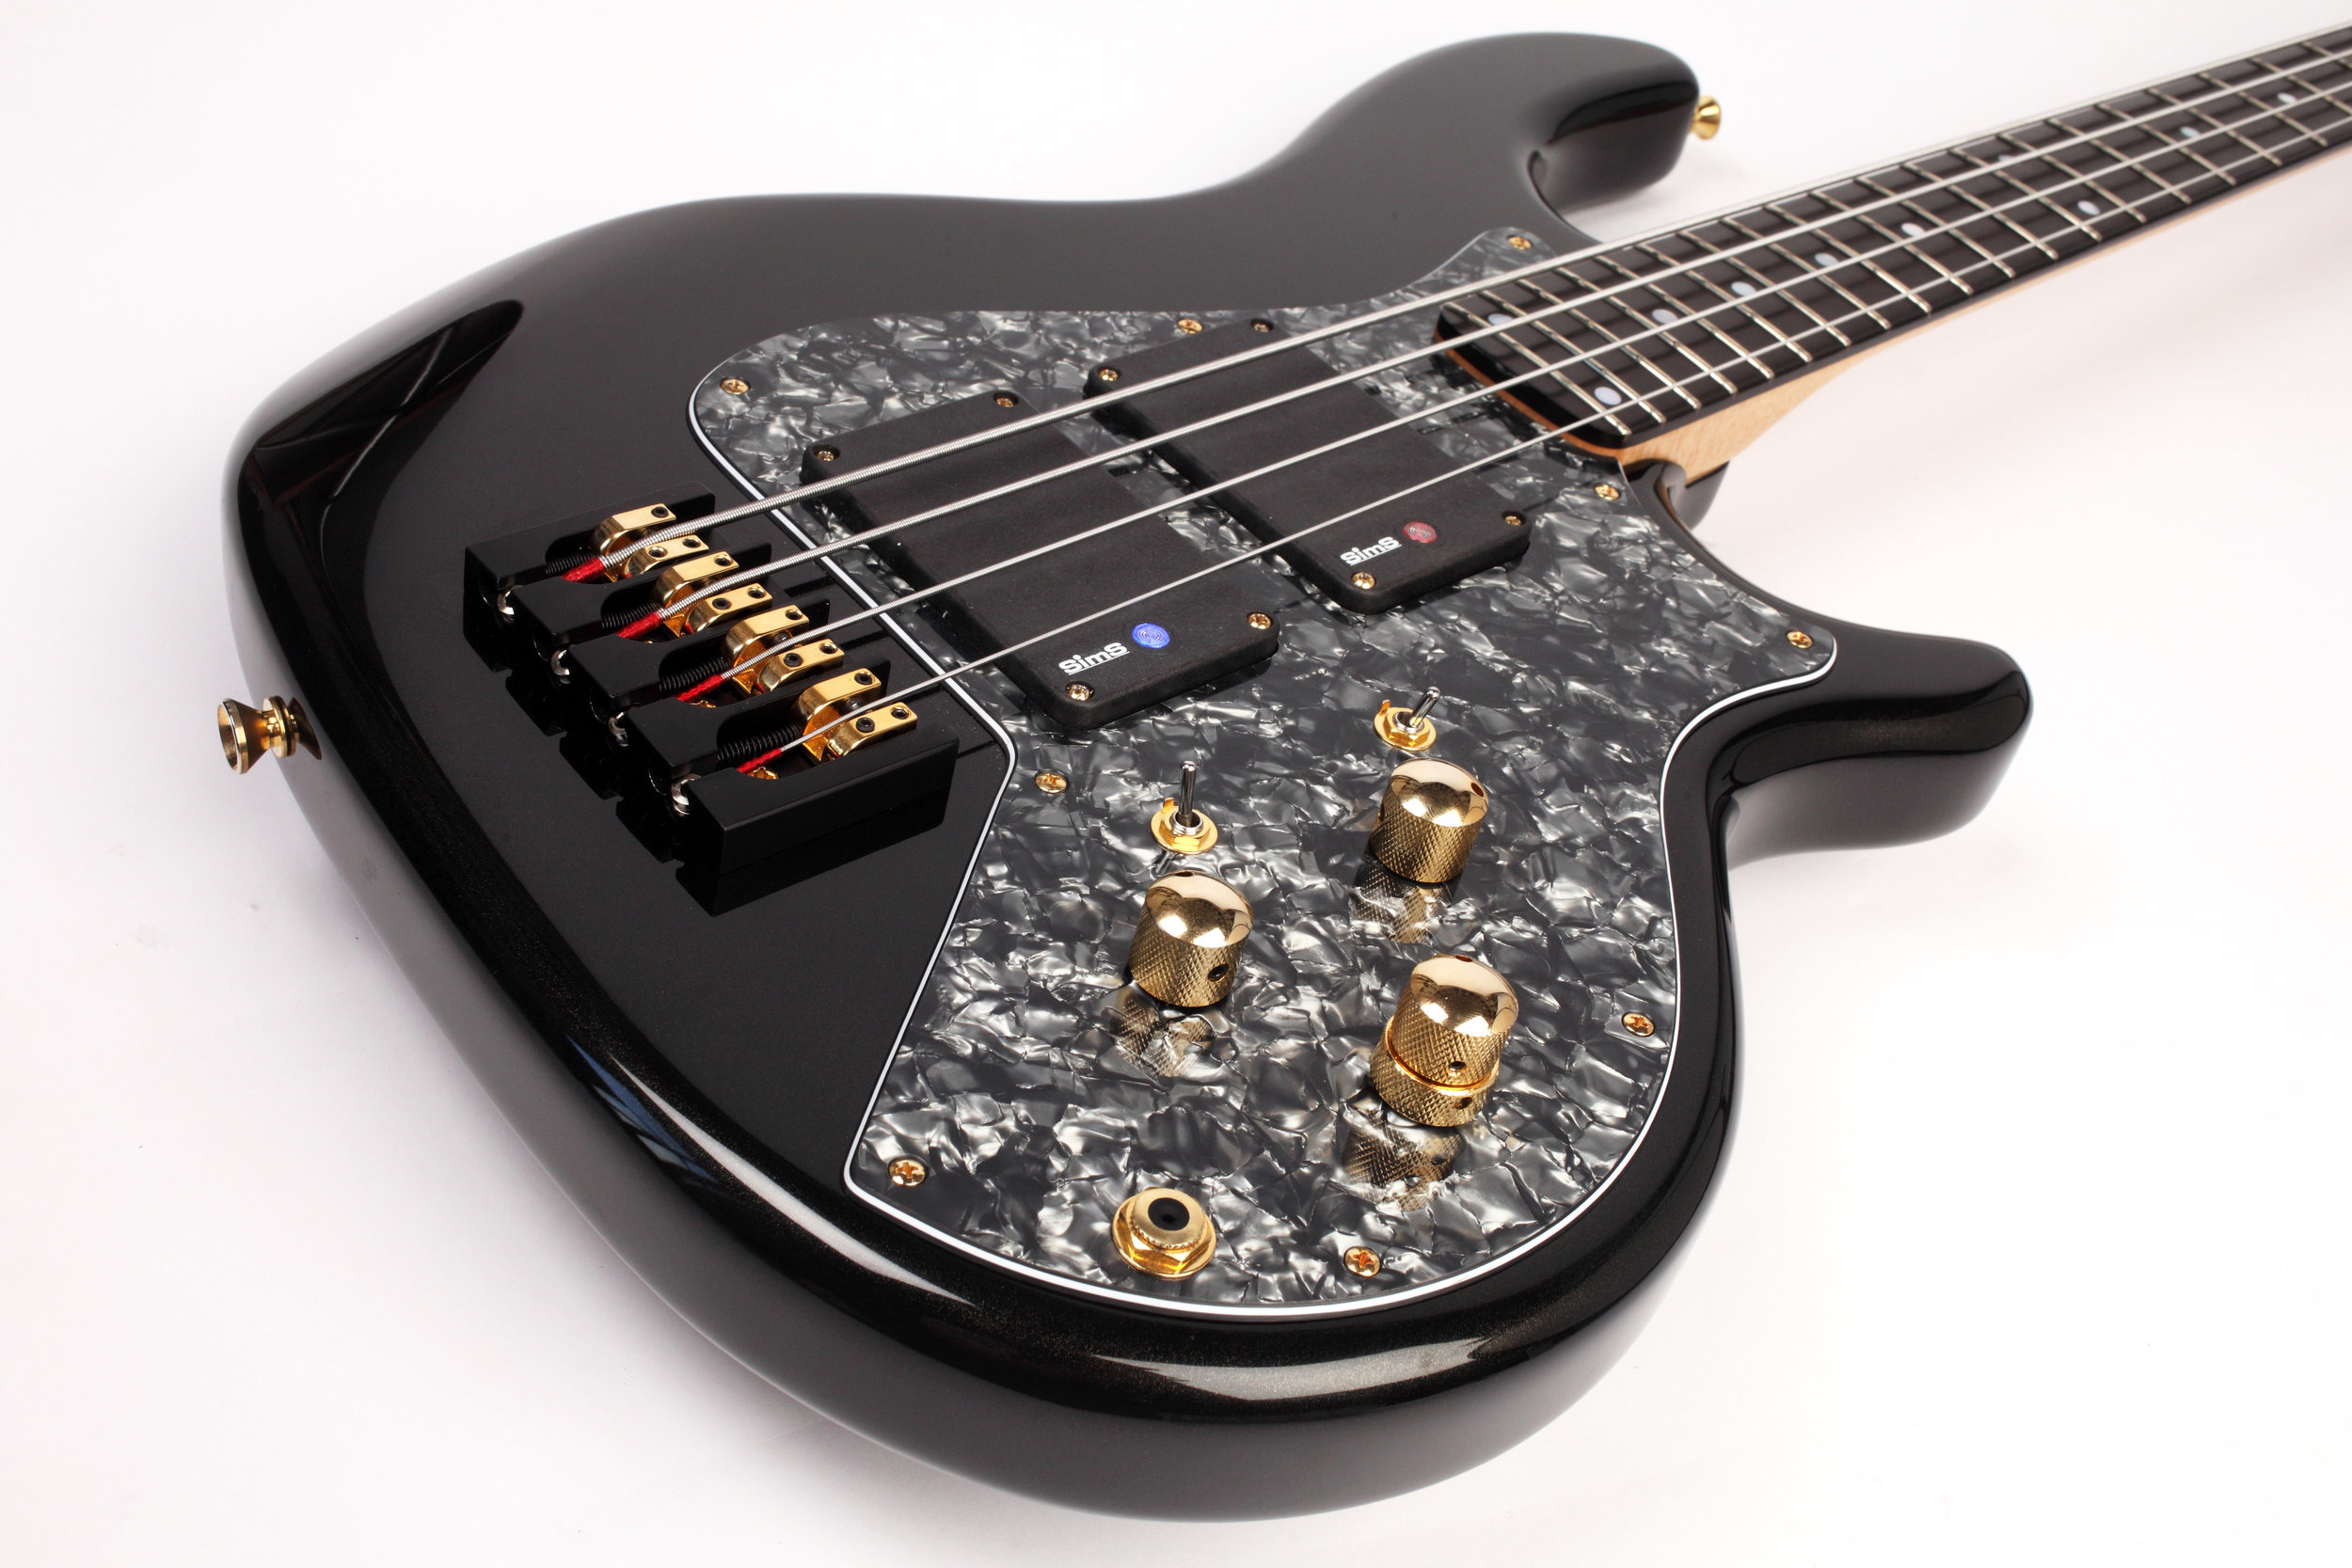 Black gold pearl high gloss polish Enfield Lionheart bass guitar with 2 band Glockenklang onboard preamp, Sims Super-Quad pickups and Hipshot hardware bridge.